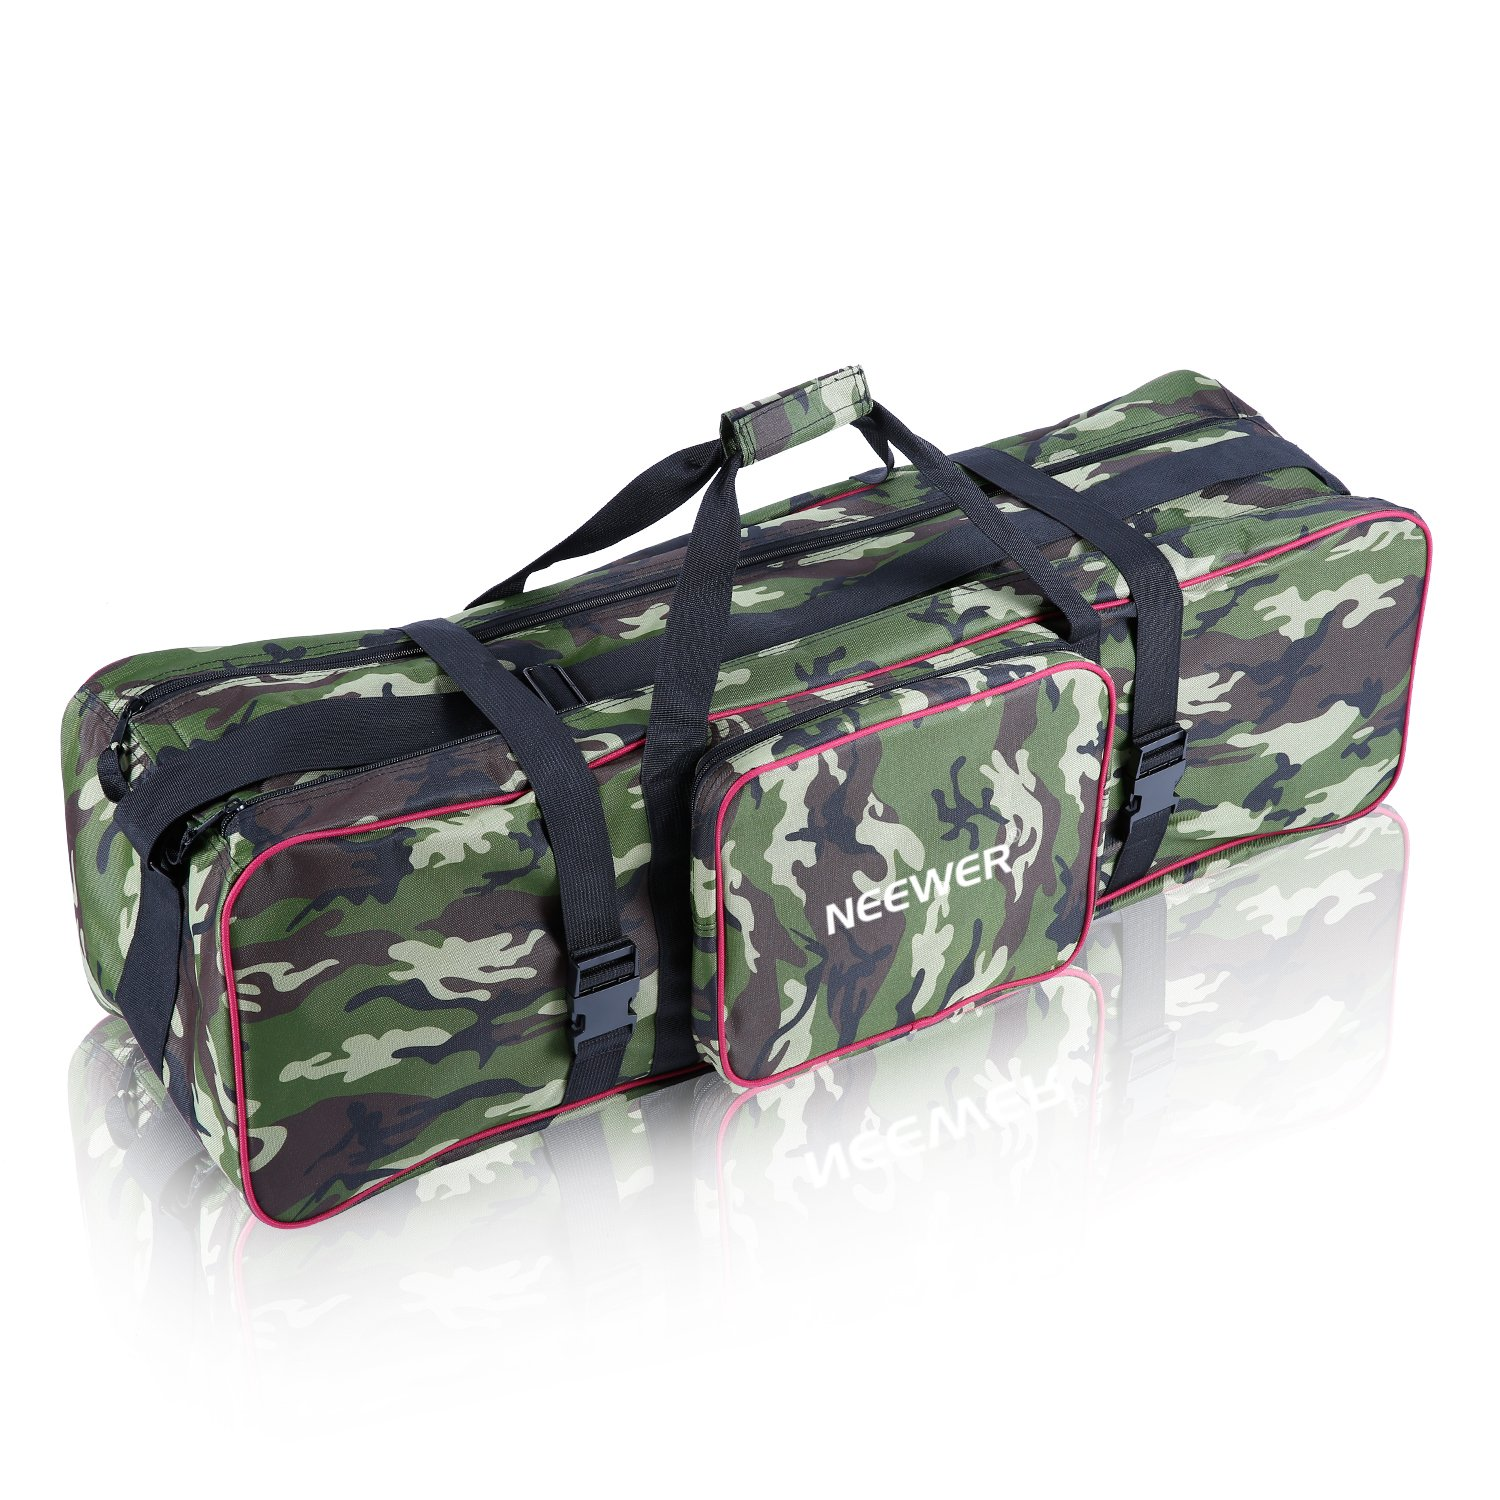 Neewer® 35''x10''x10''/90x 25 x 25 cm Photo Studio Equipment Large Carrying Bag with Strap for Tripod Light Stand and Photography Lighting Kit(Camouflage) by Neewer